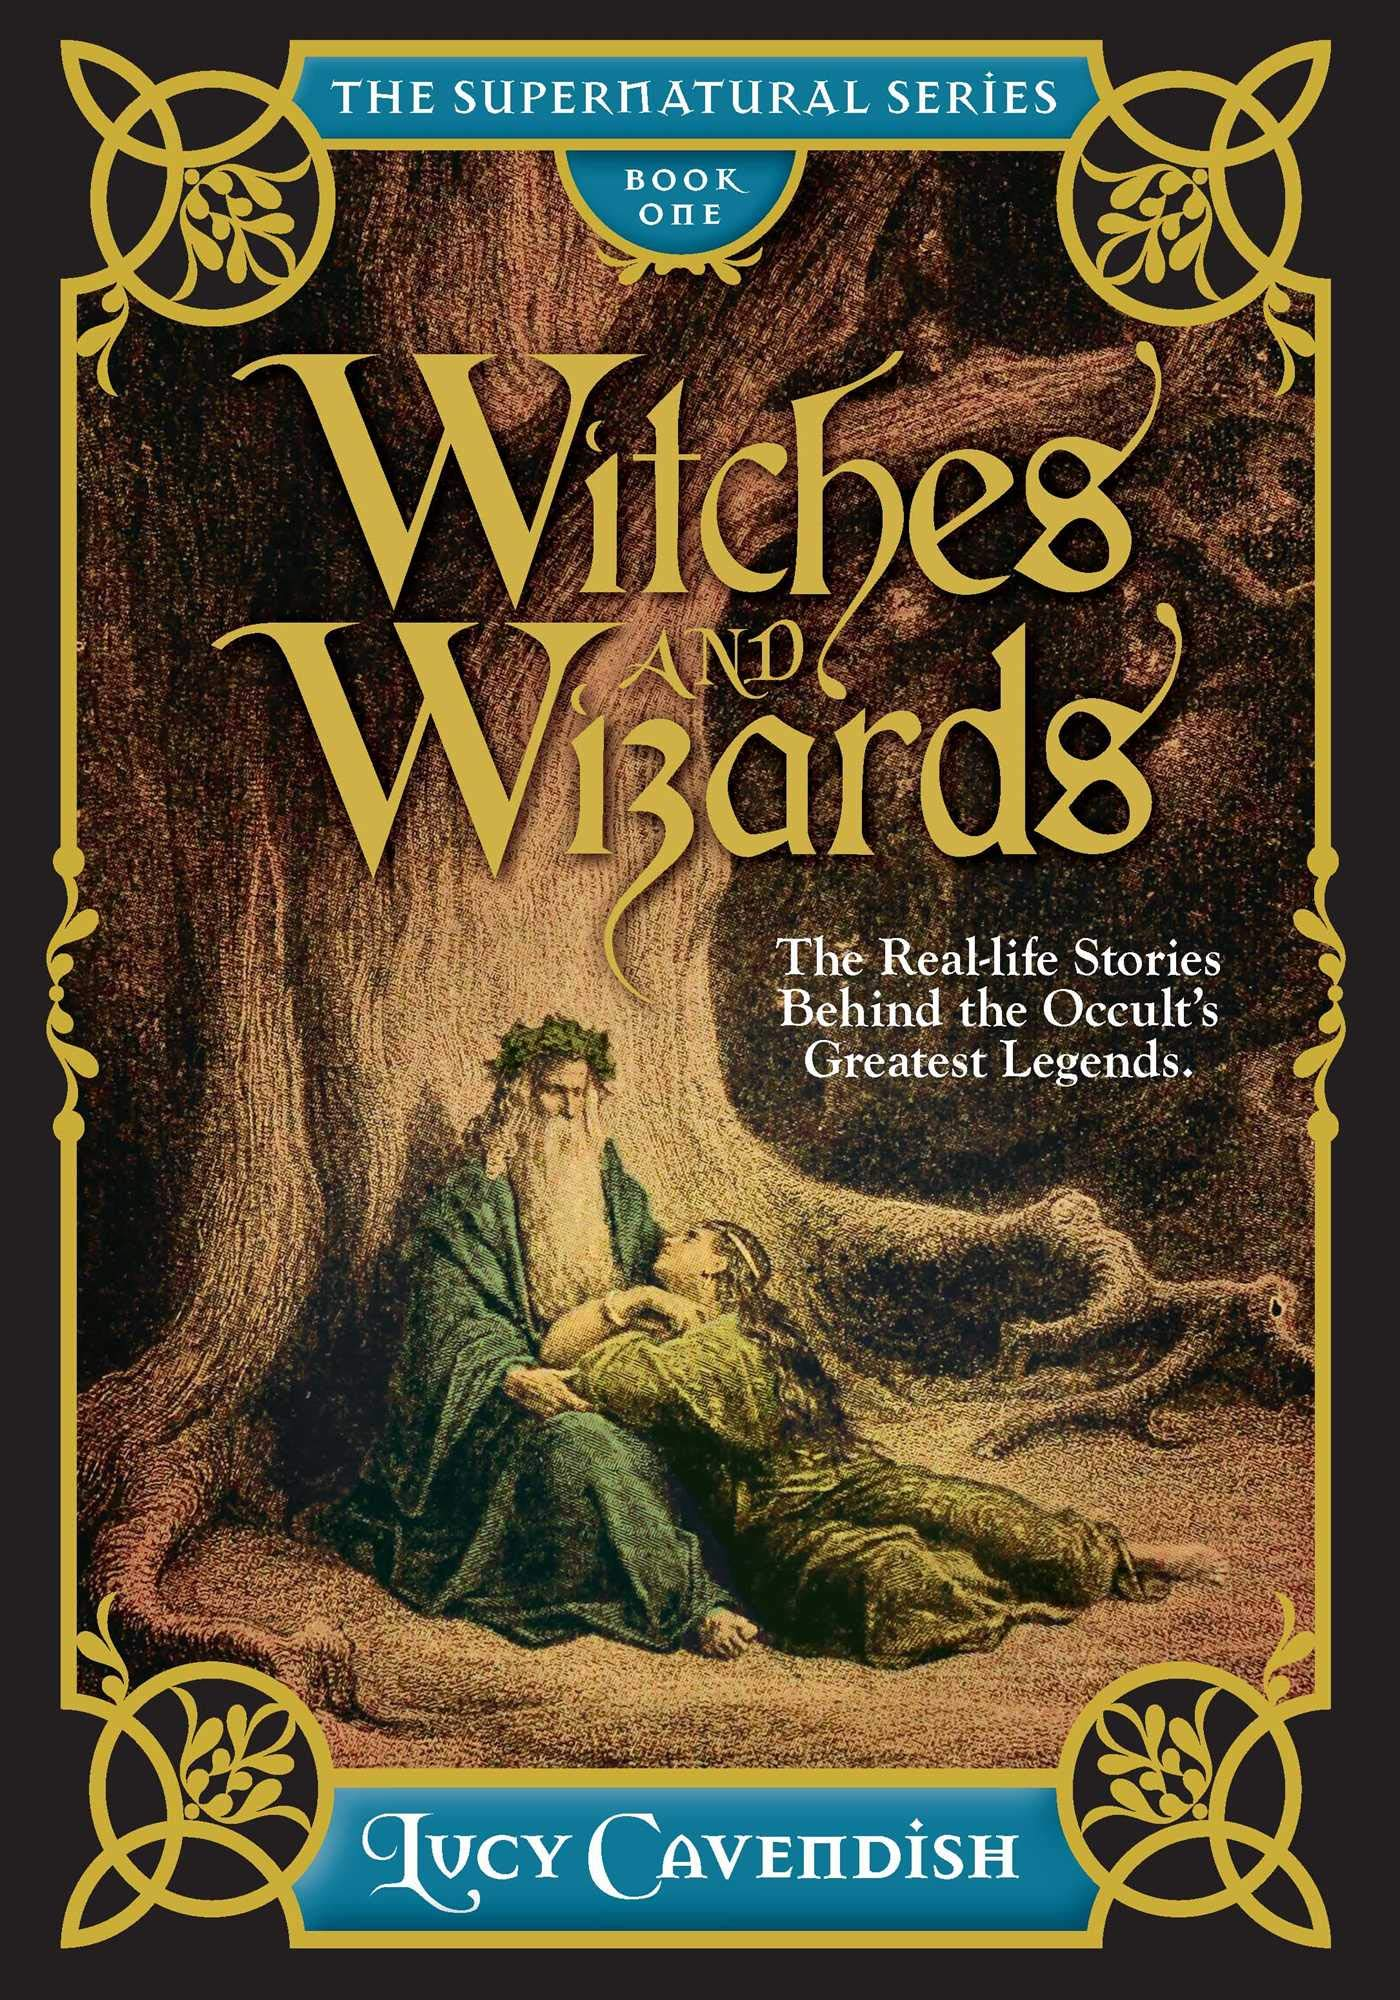 Witches and Wizards: The Real-Life Stories Behind the Occult's Greatest Legends (The Supernatural Series) ebook